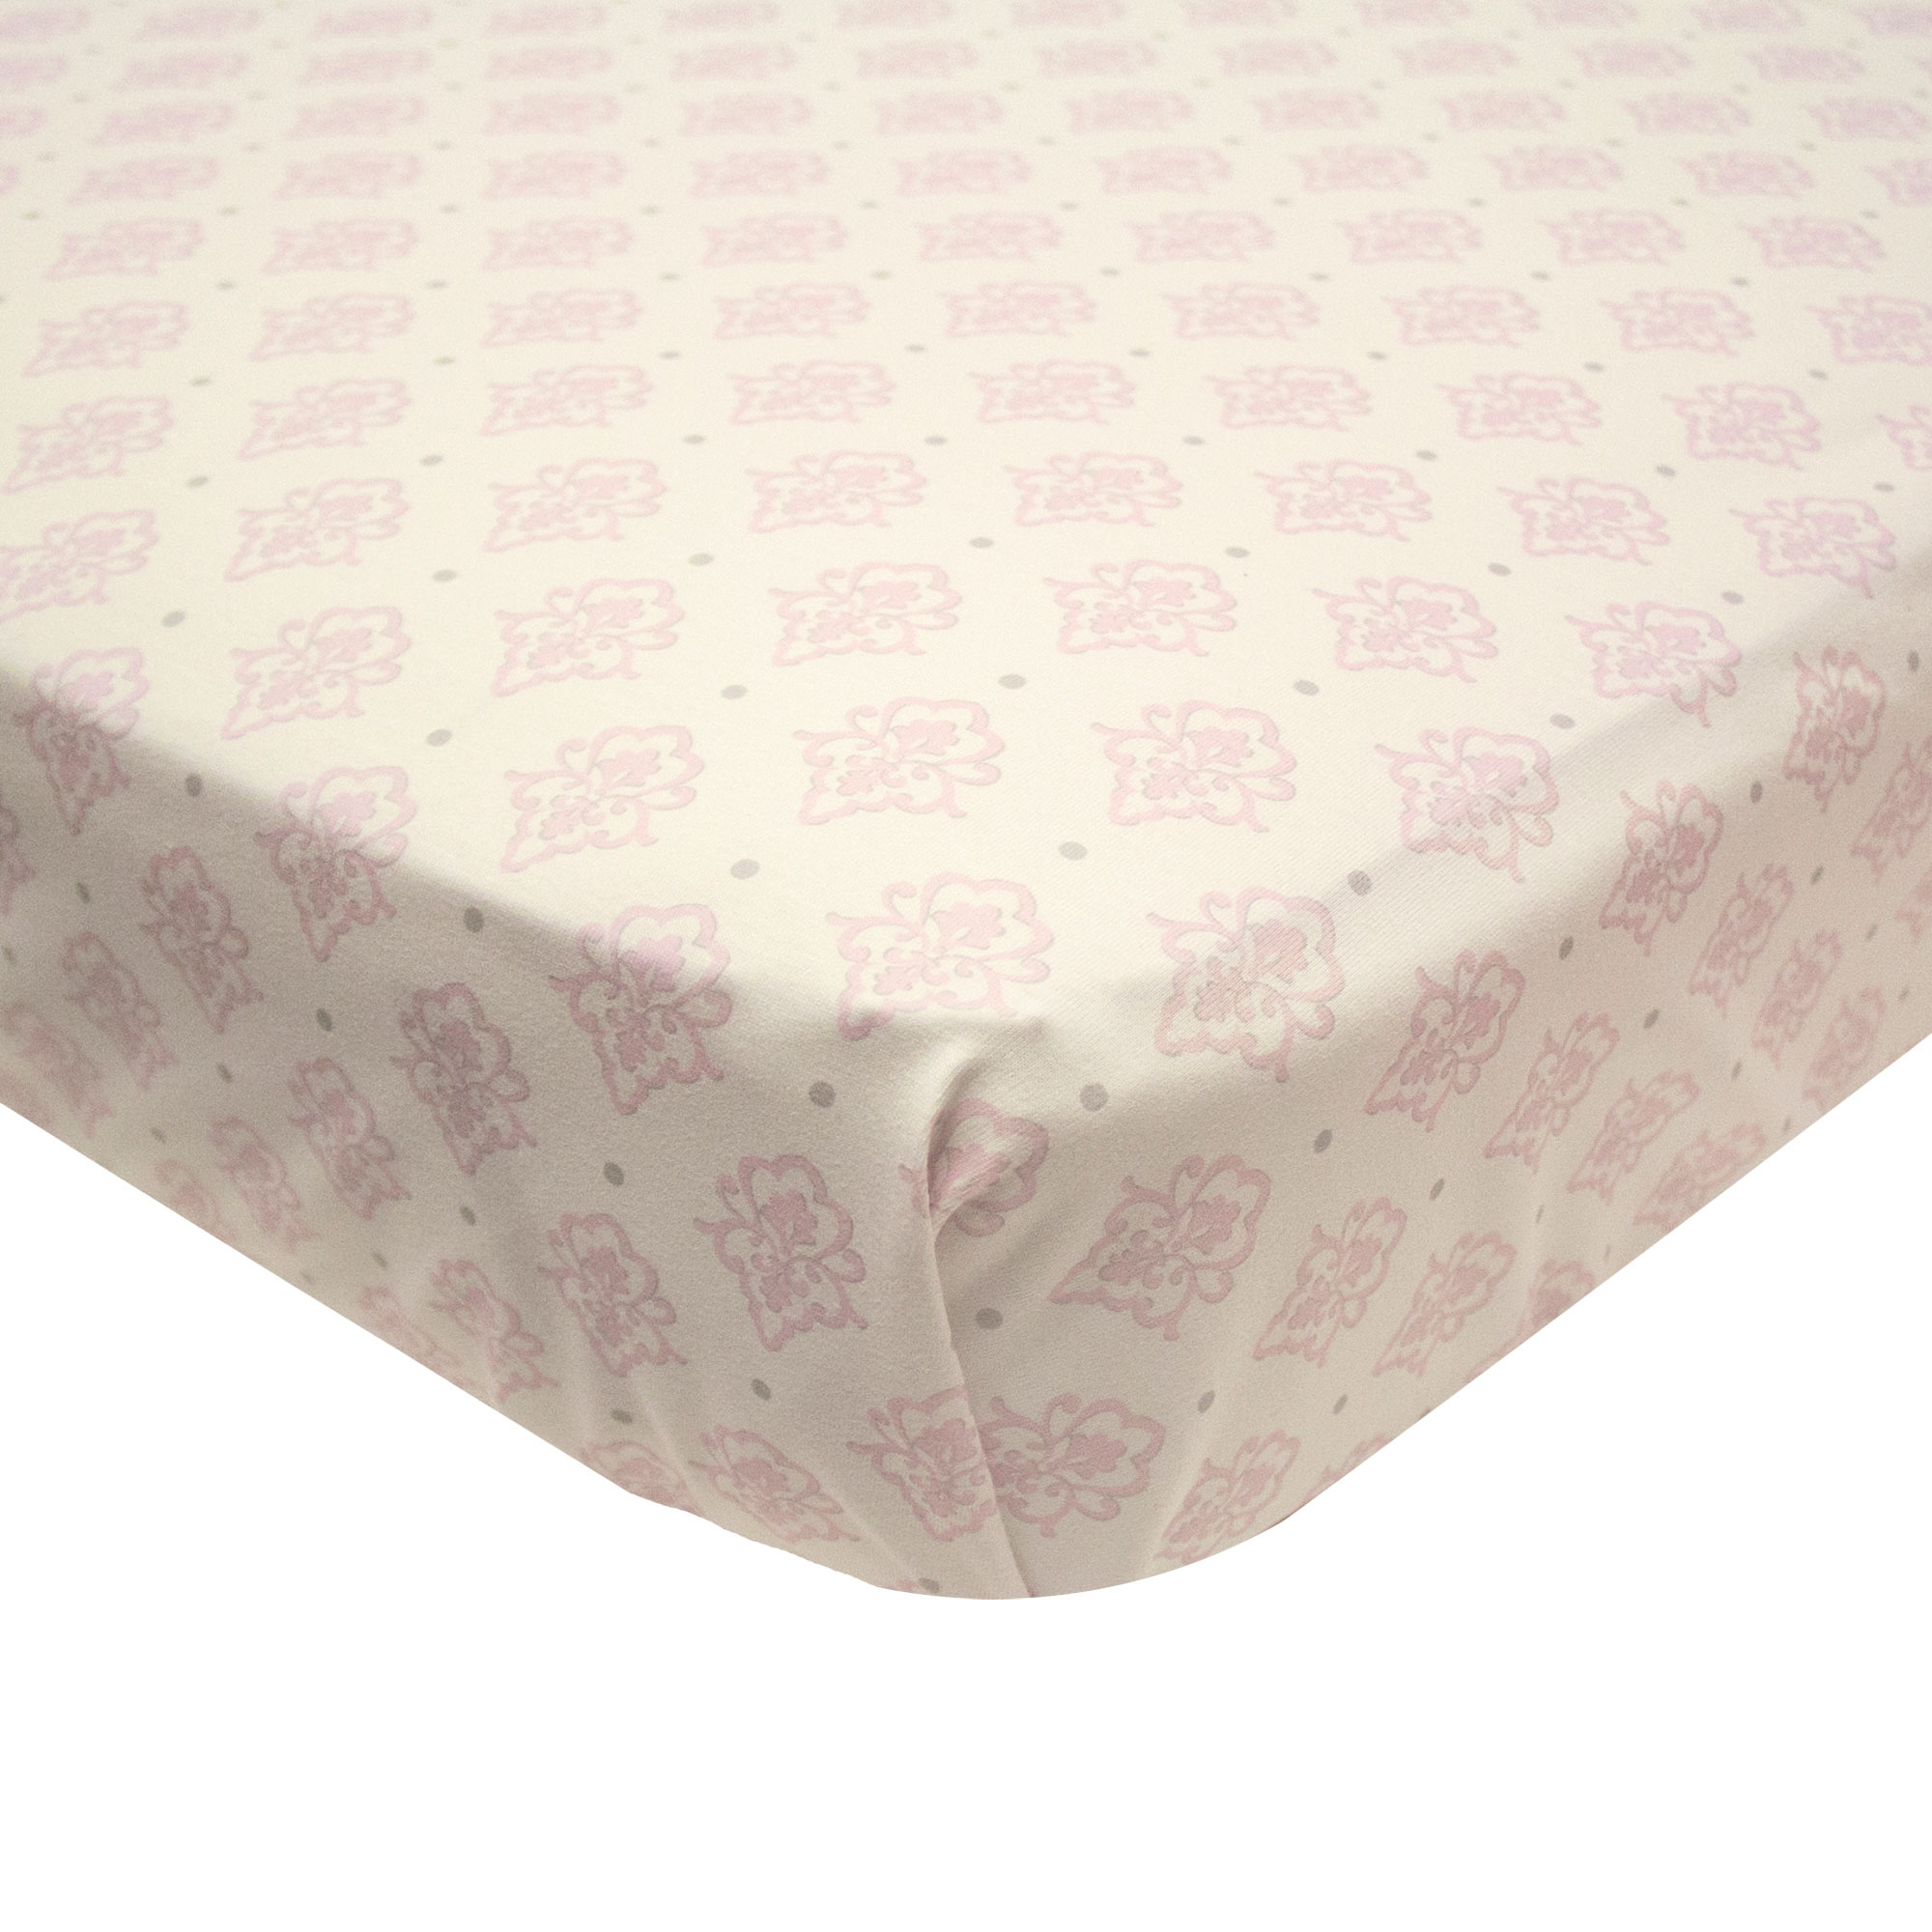 The Peanut Shell Baby Girl Crib Sheet - Pink and White - Arianna Fitted Crib Sheet